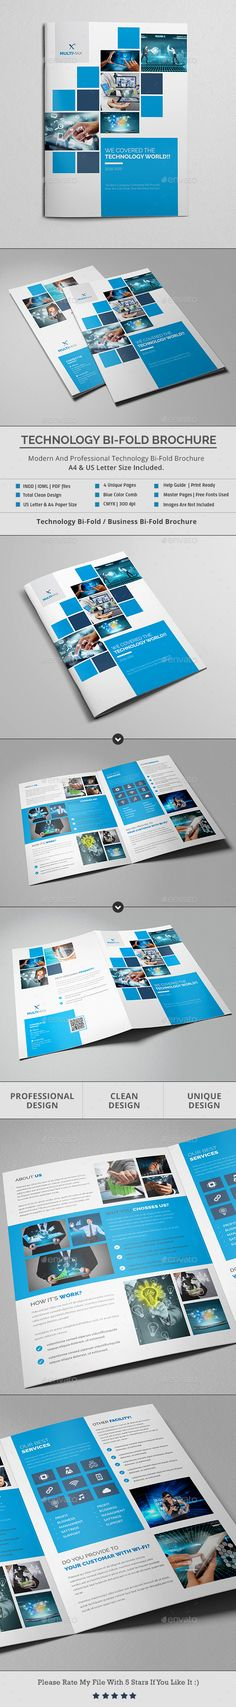 Technology Bi-Fold Brochure Template InDesign INDD